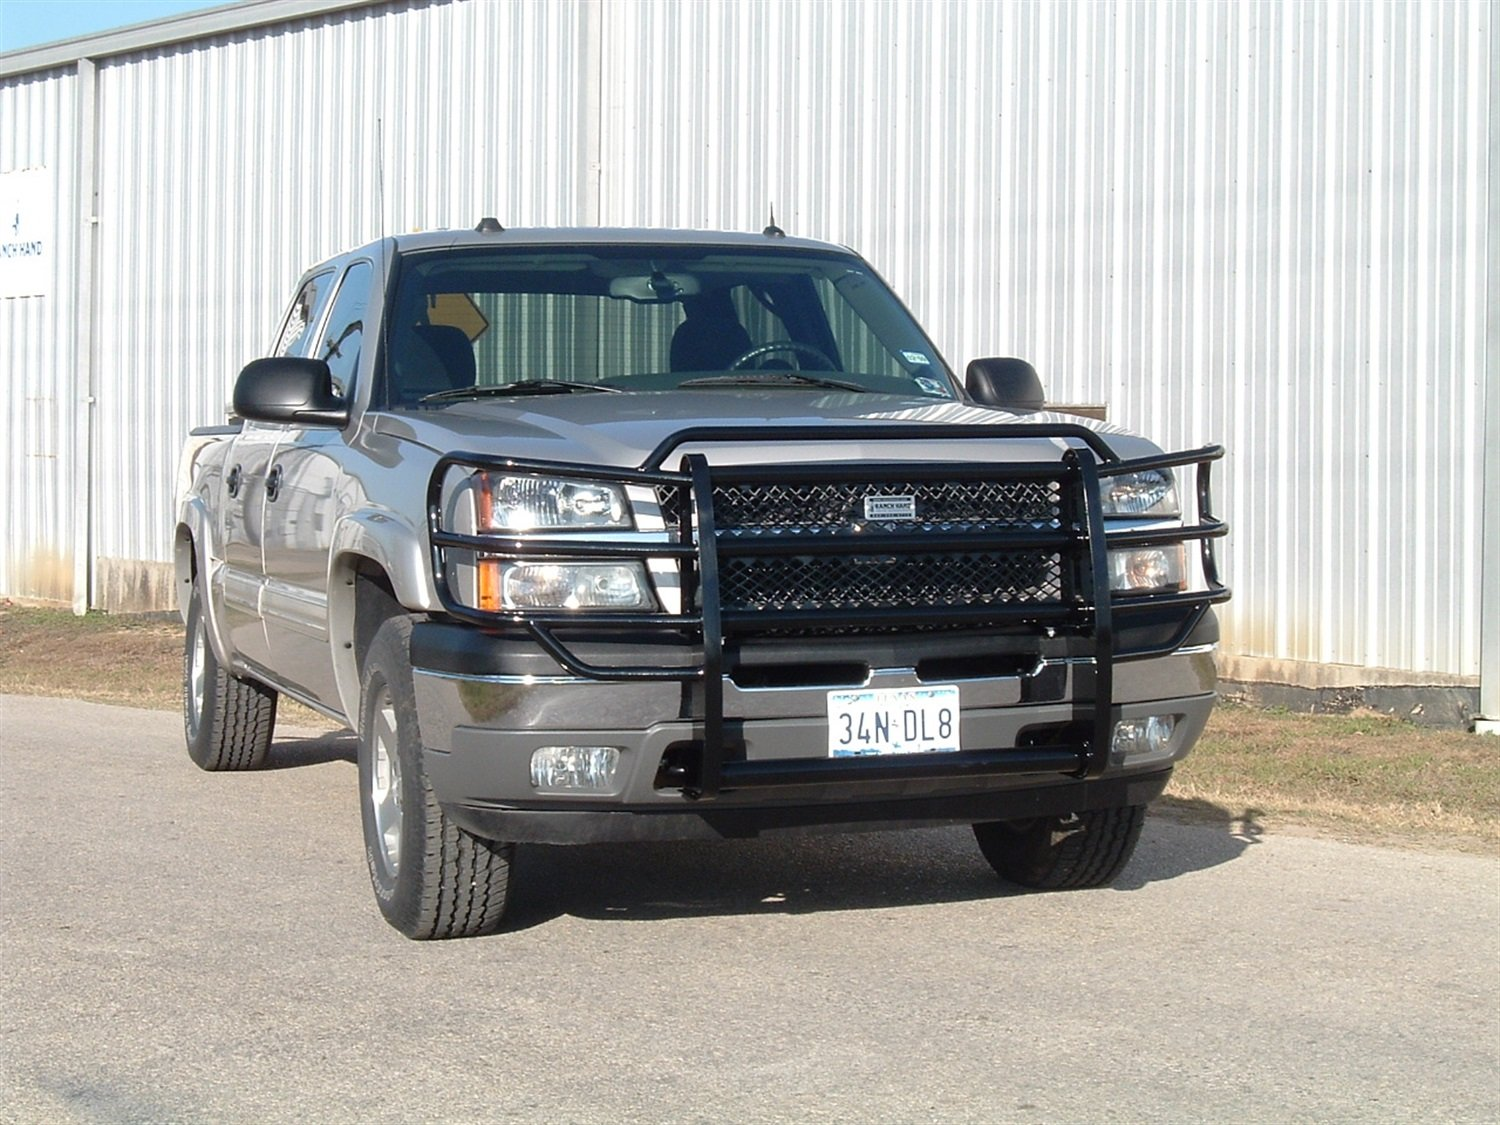 Silverado 2003 chevy silverado 1500 accessories : Amazon.com: Ranch Hand GGC06HBL1 Legend Grille Guard for Ford ...